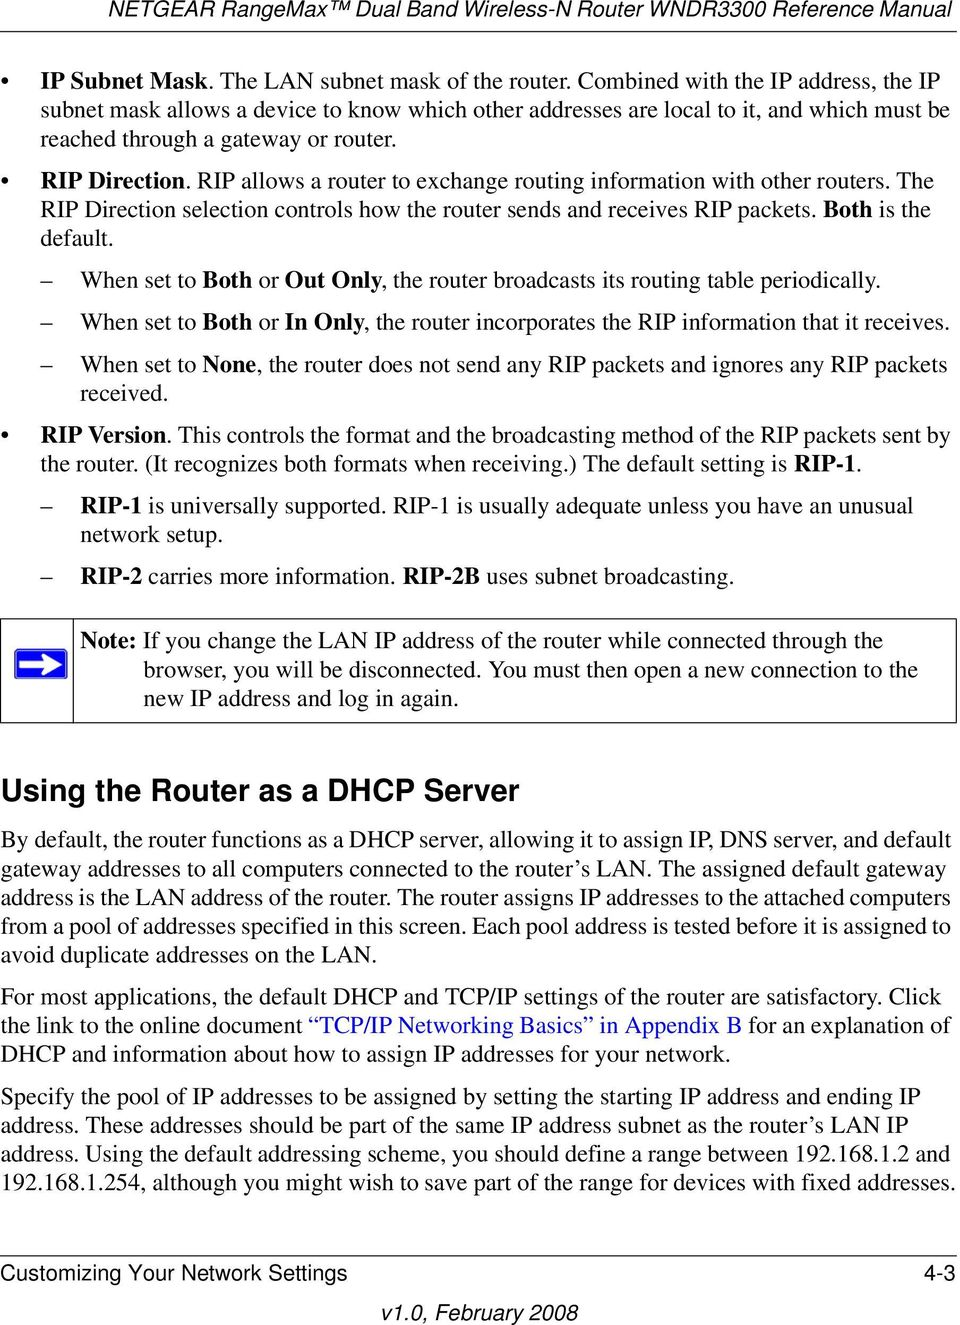 RIP allows a router to exchange routing information with other routers. The RIP Direction selection controls how the router sends and receives RIP packets. Both is the default.